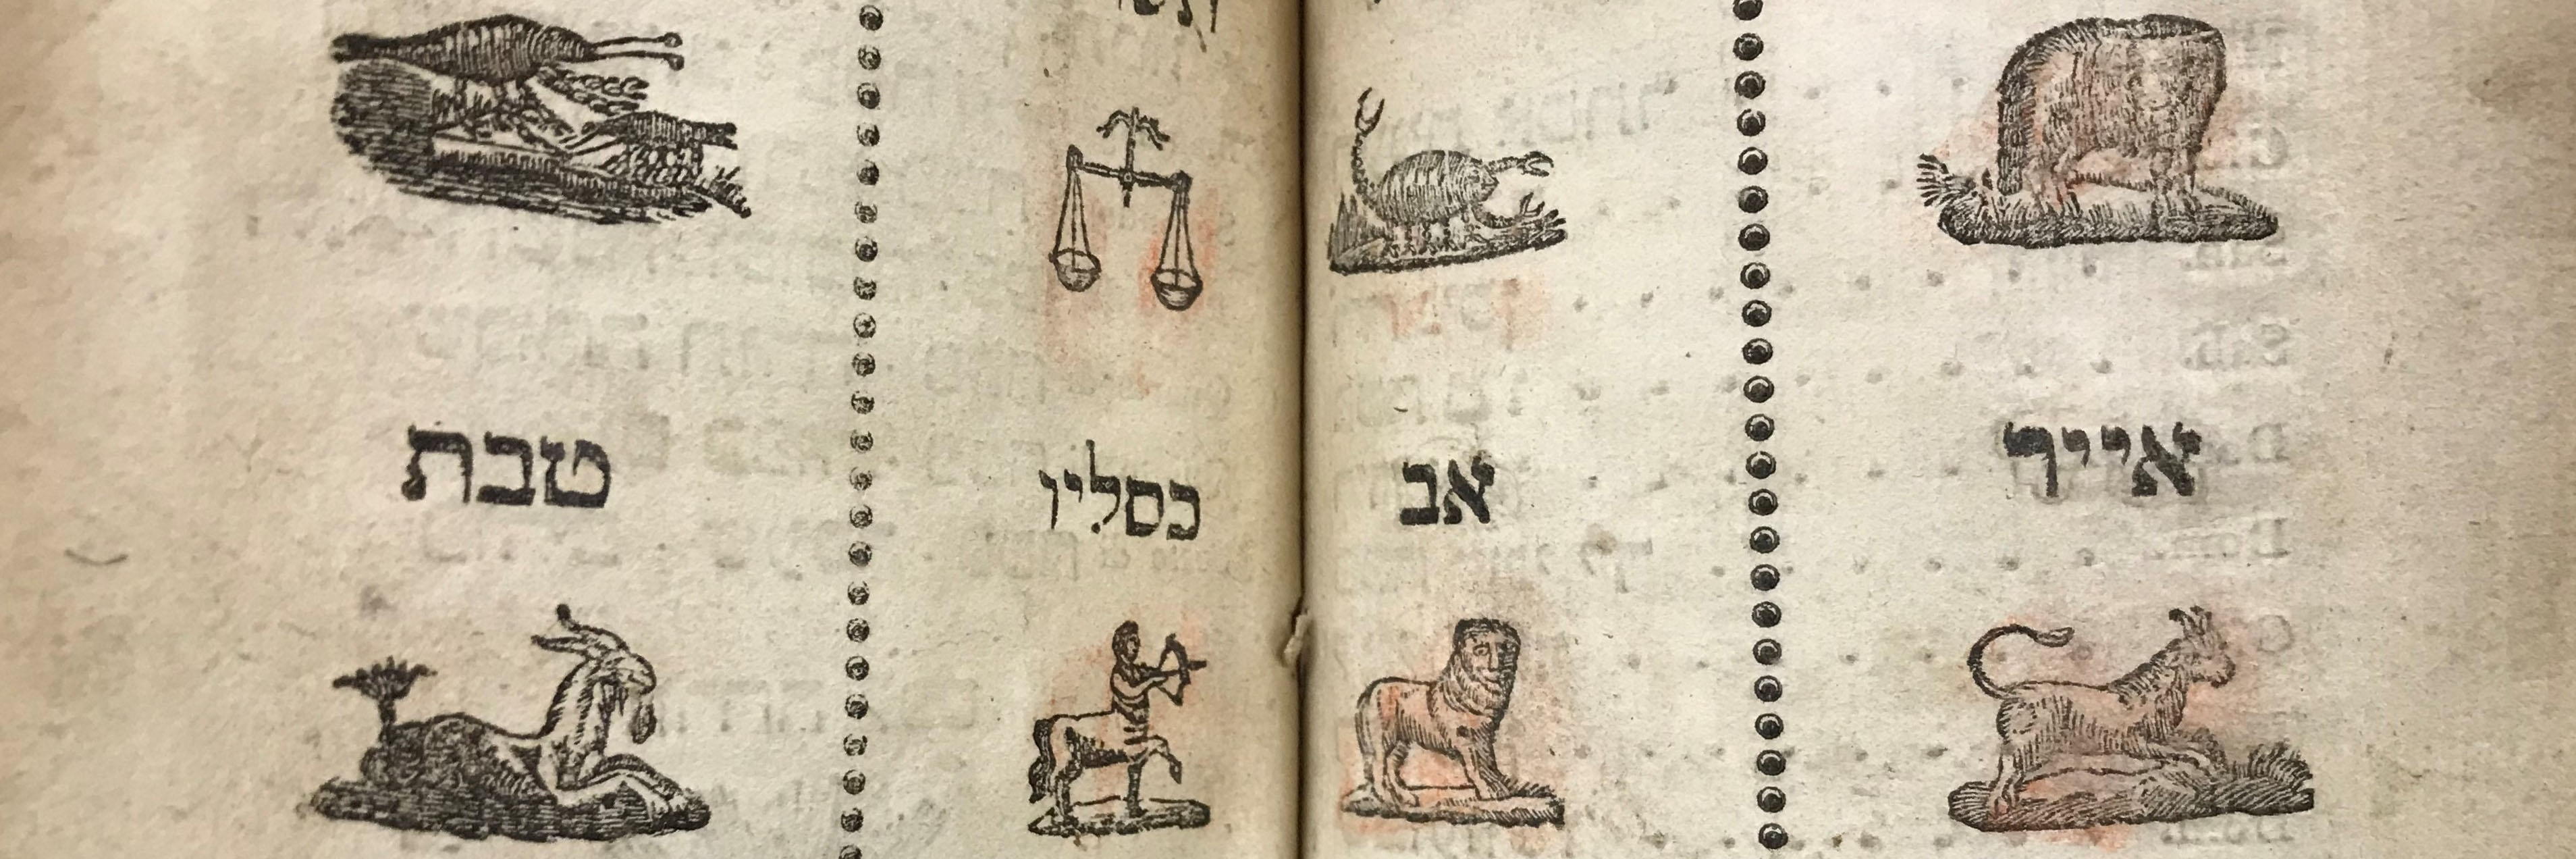 The months of the Jewish calendar and the corresponding Zodiac sign (cropped)